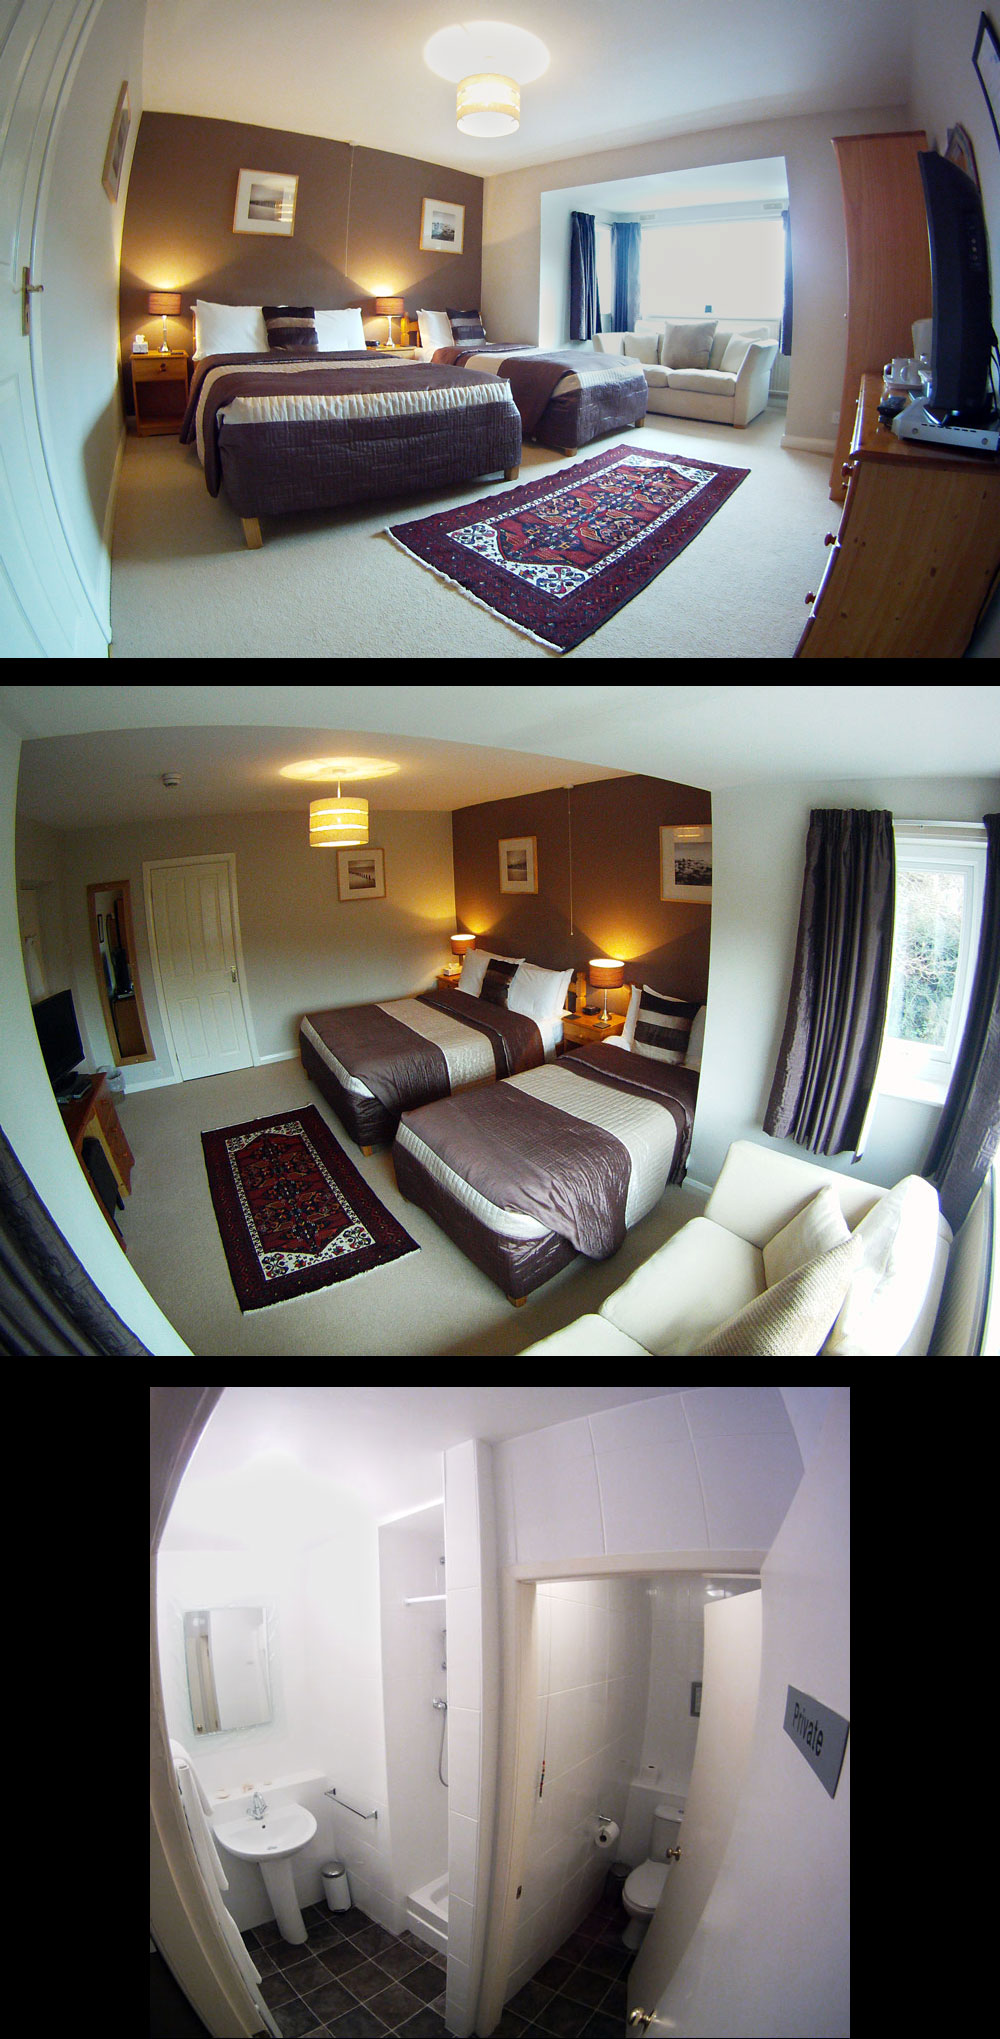 Room 6, Crib Yr Ddysgl, family room, sleeps 3 with double bed and single bed, private bathroom